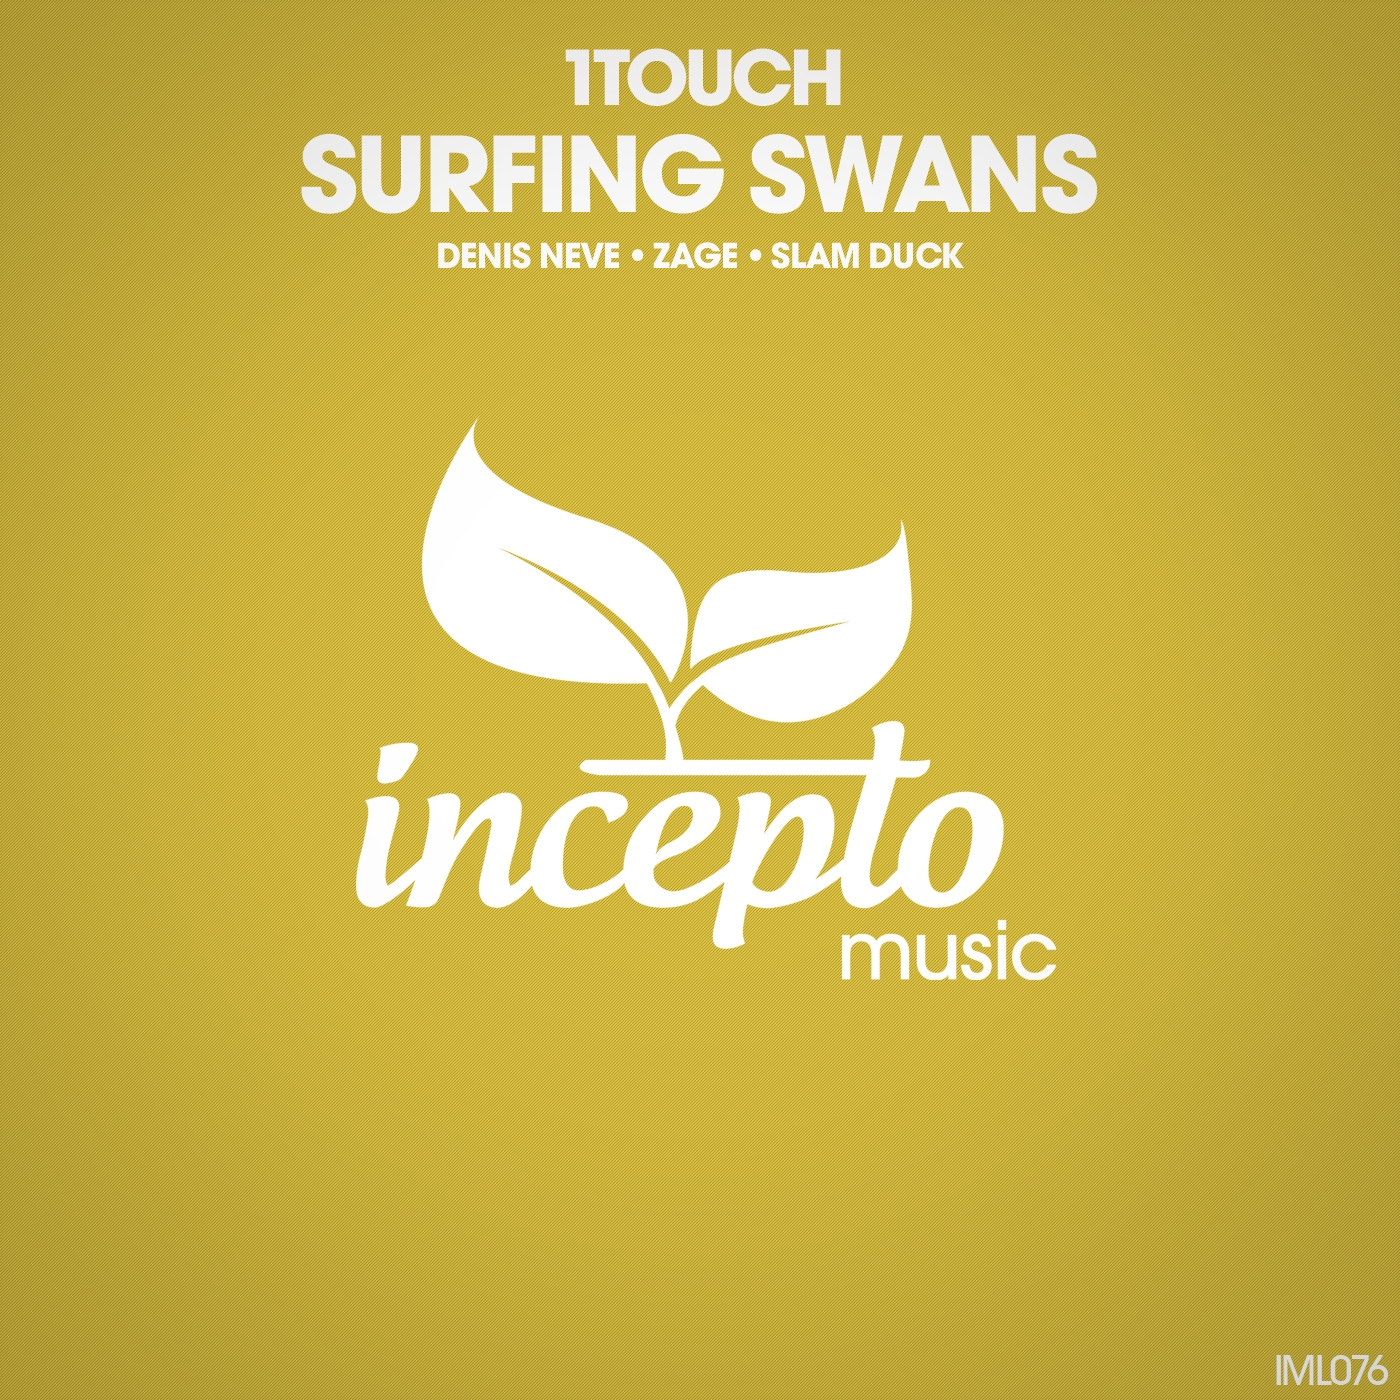 1Touch - Surfing Swans (Original Mix)